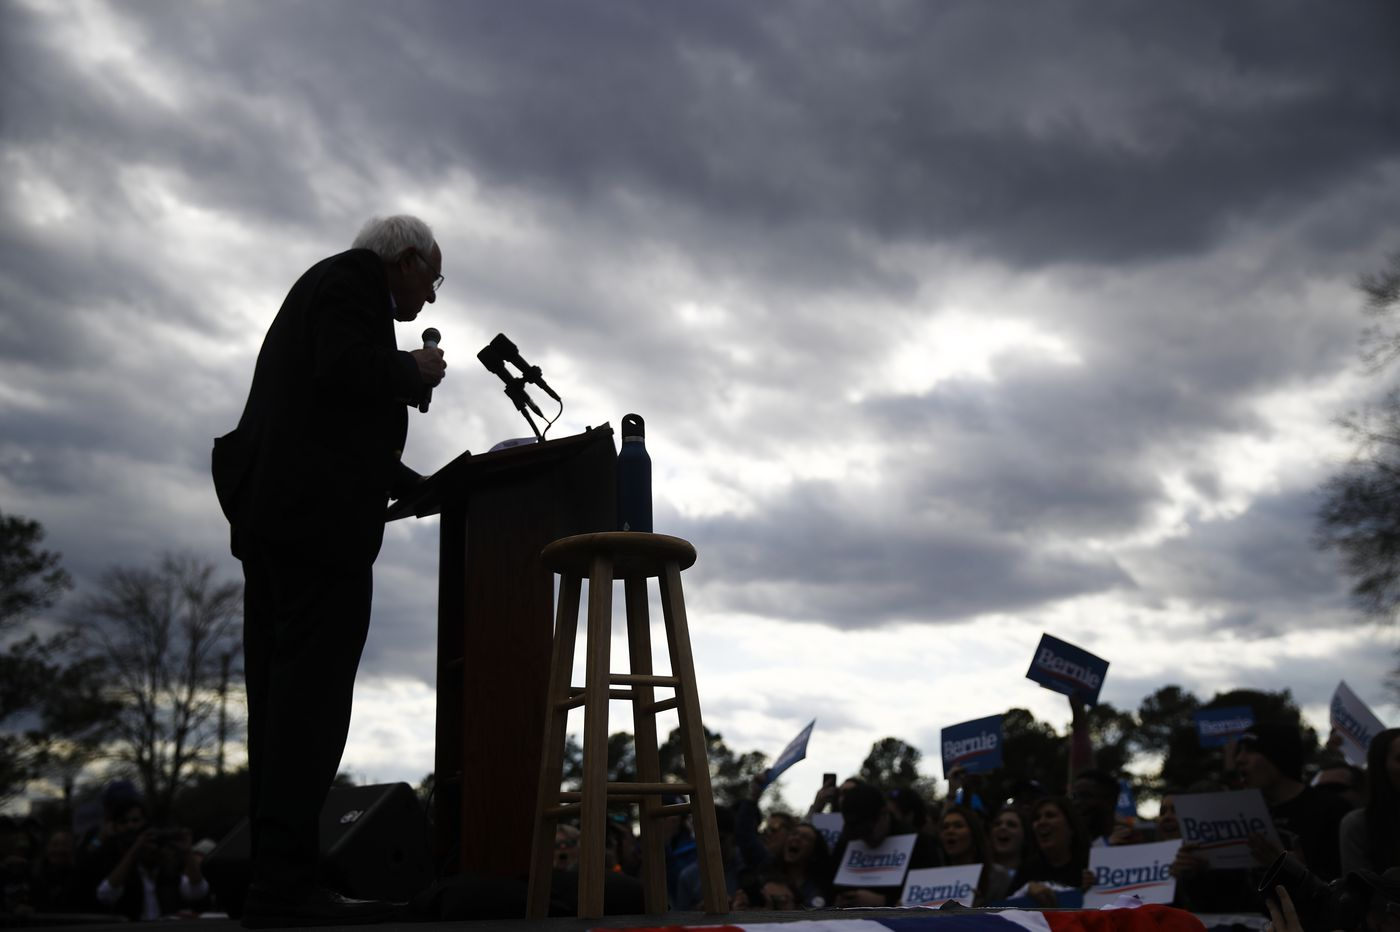 Coronavirus shows Bernie Sanders was right. How can we change America to his vision? | Will Bunch